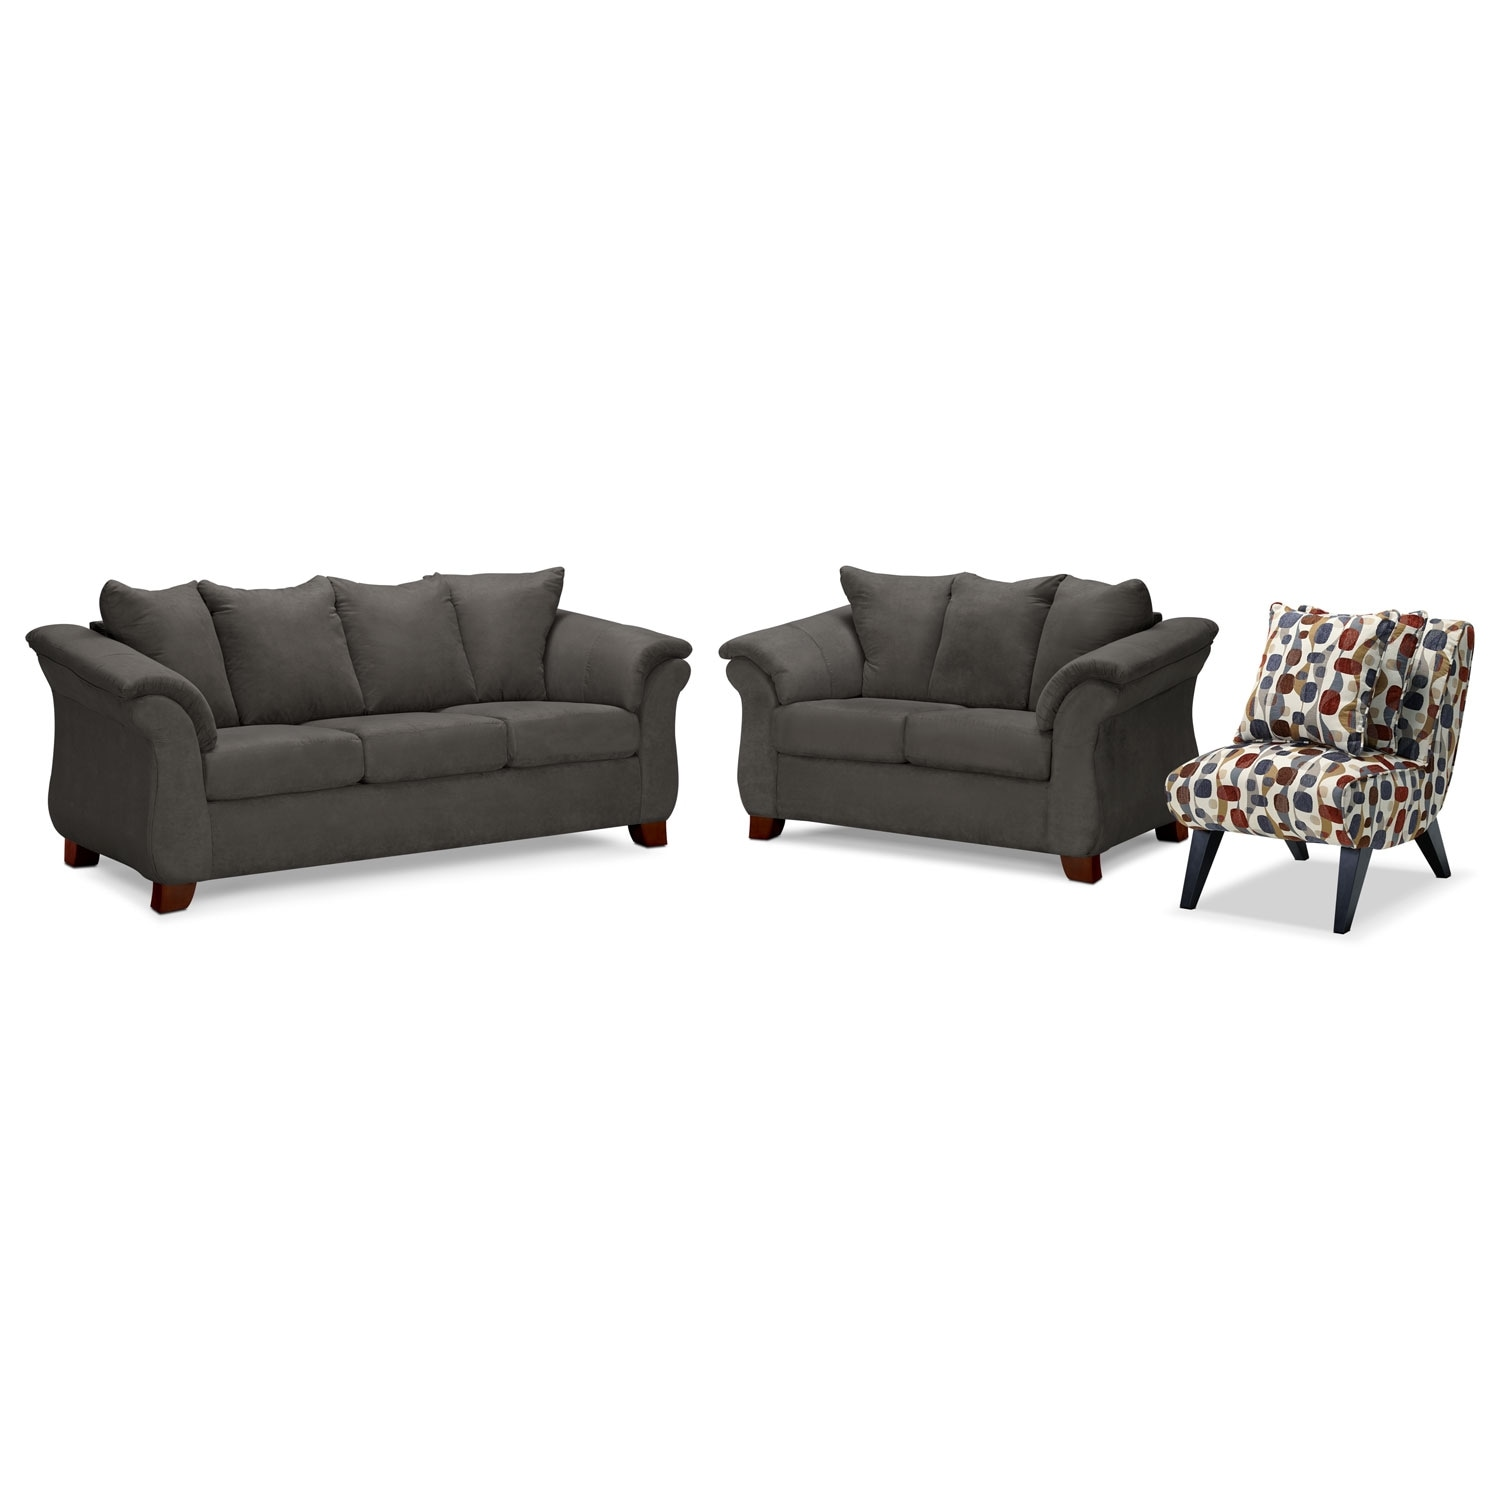 Furniture Com: Adrian Sofa, Loveseat And Accent Chair Set